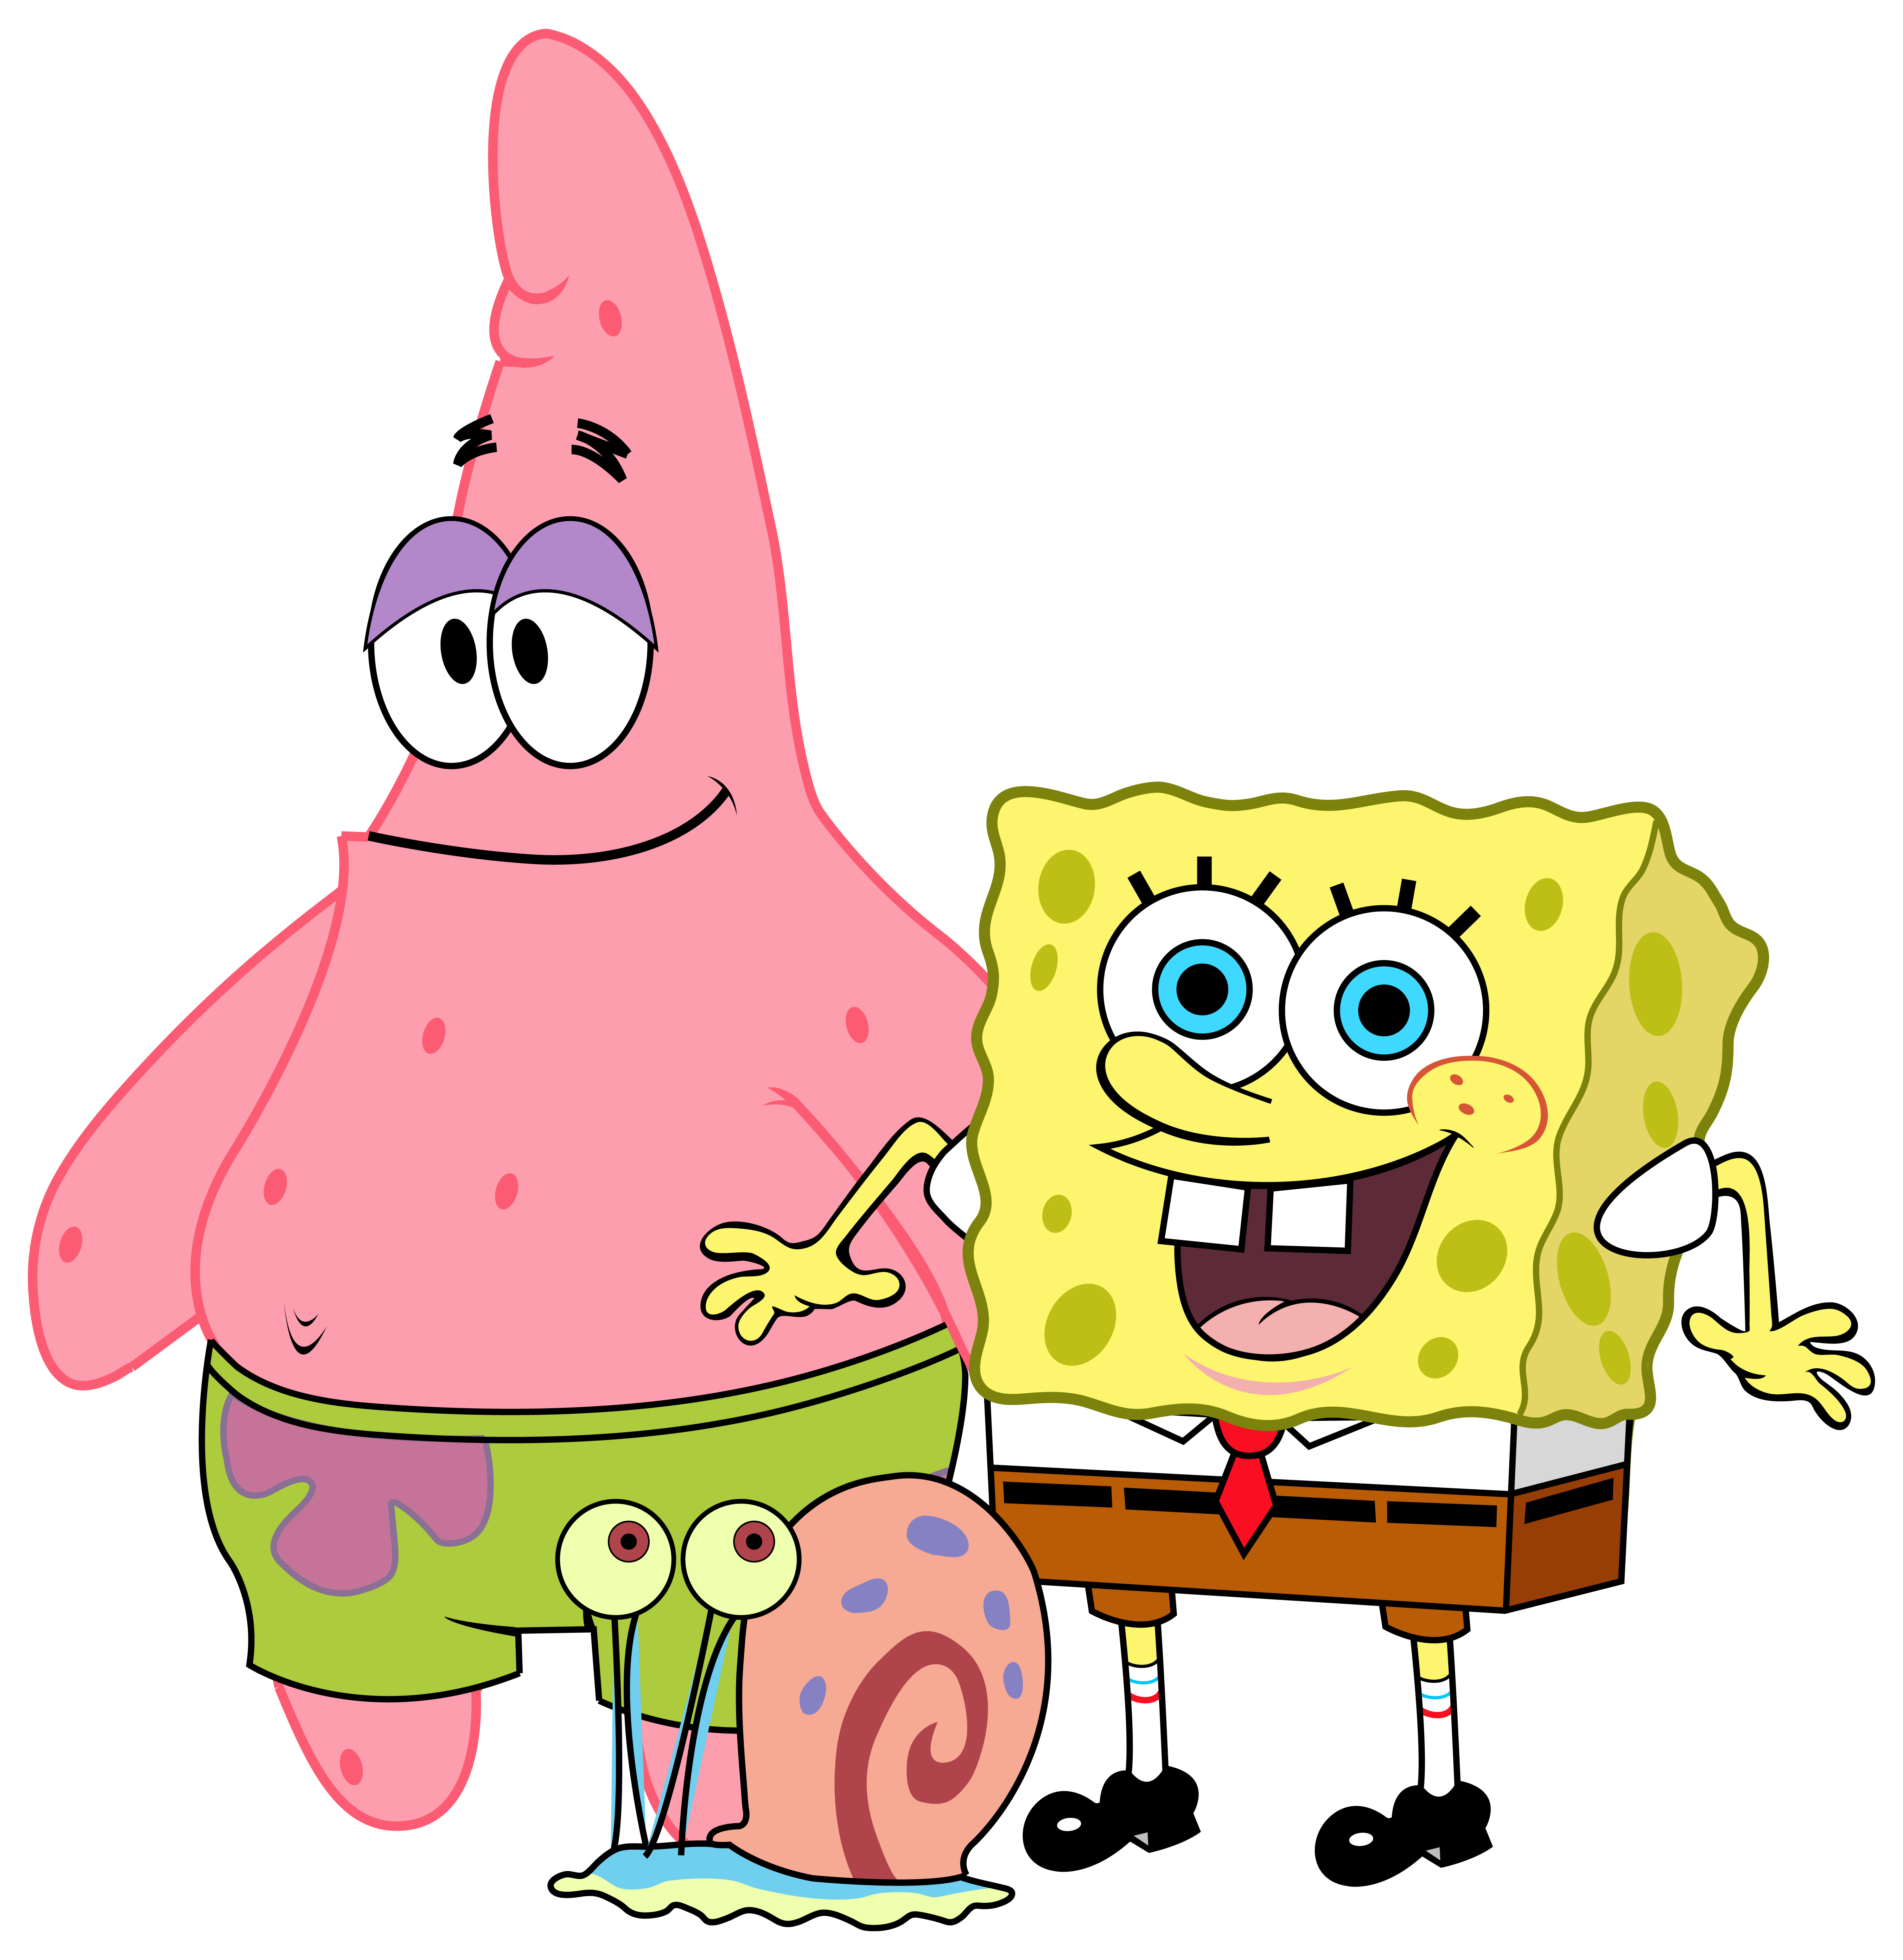 graphic freeuse download Happy birthday friend clipart. Spongebob and friends png